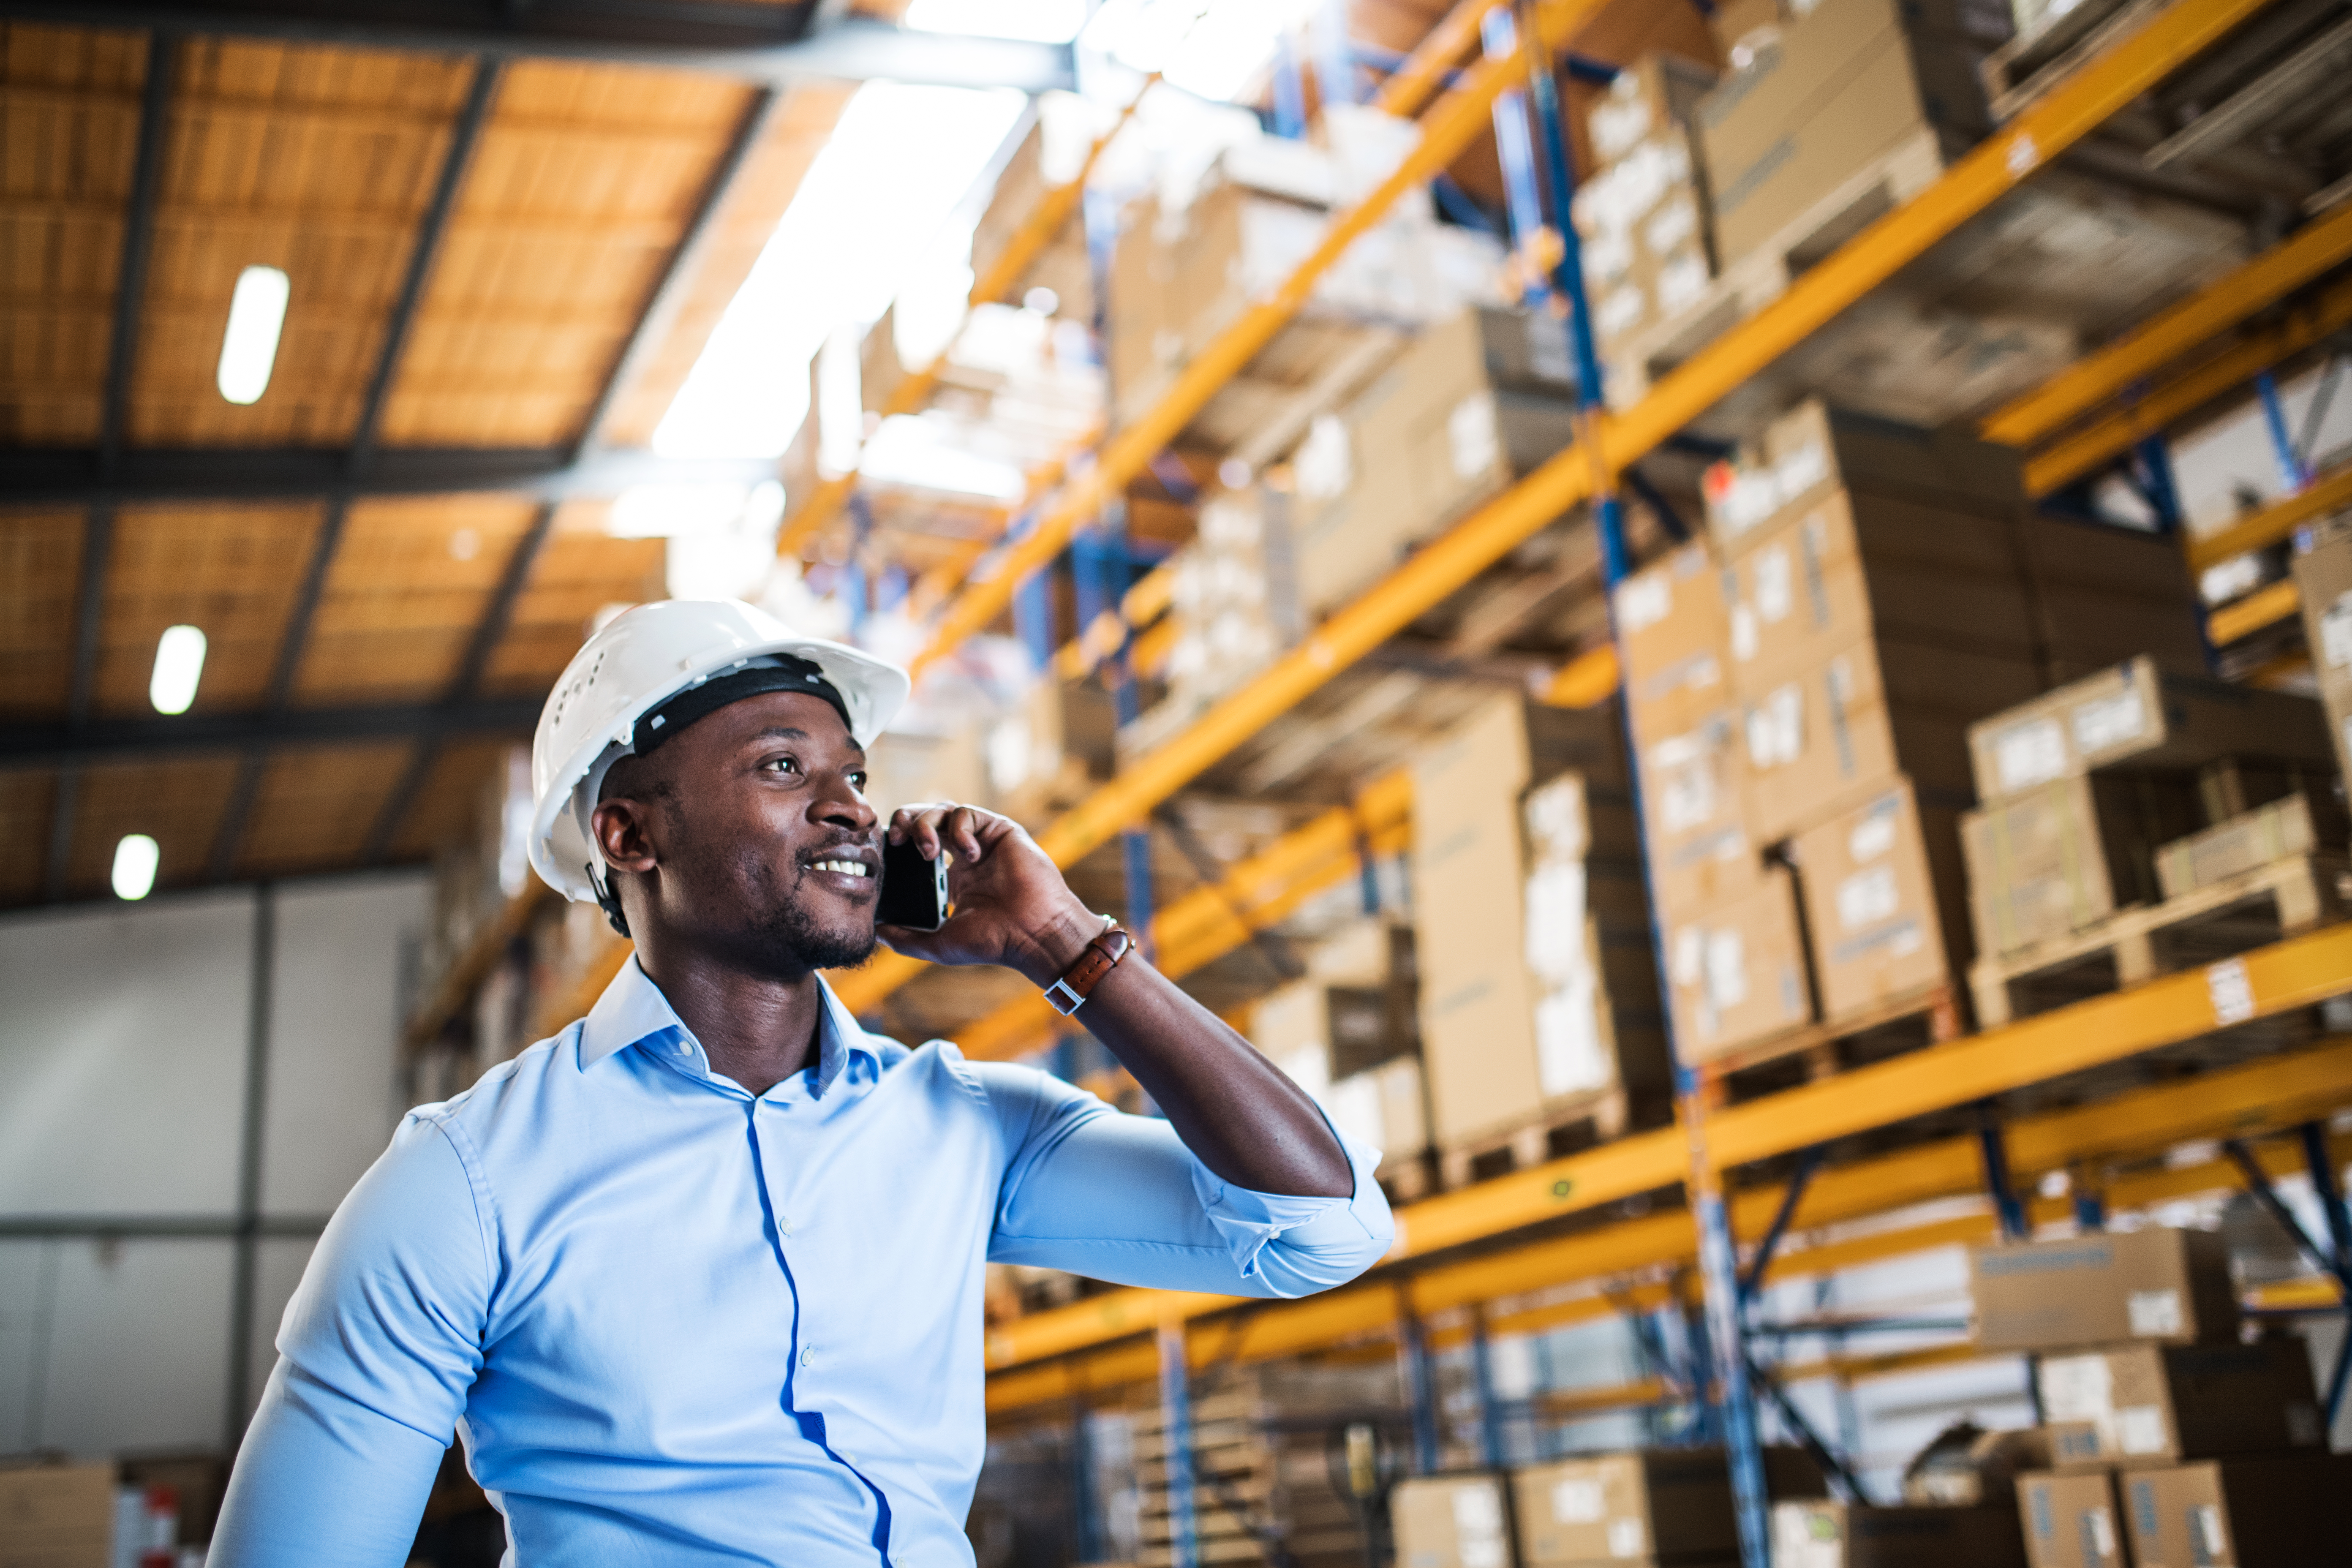 List of Responsibilities for a Warehouse Worker | Chron com